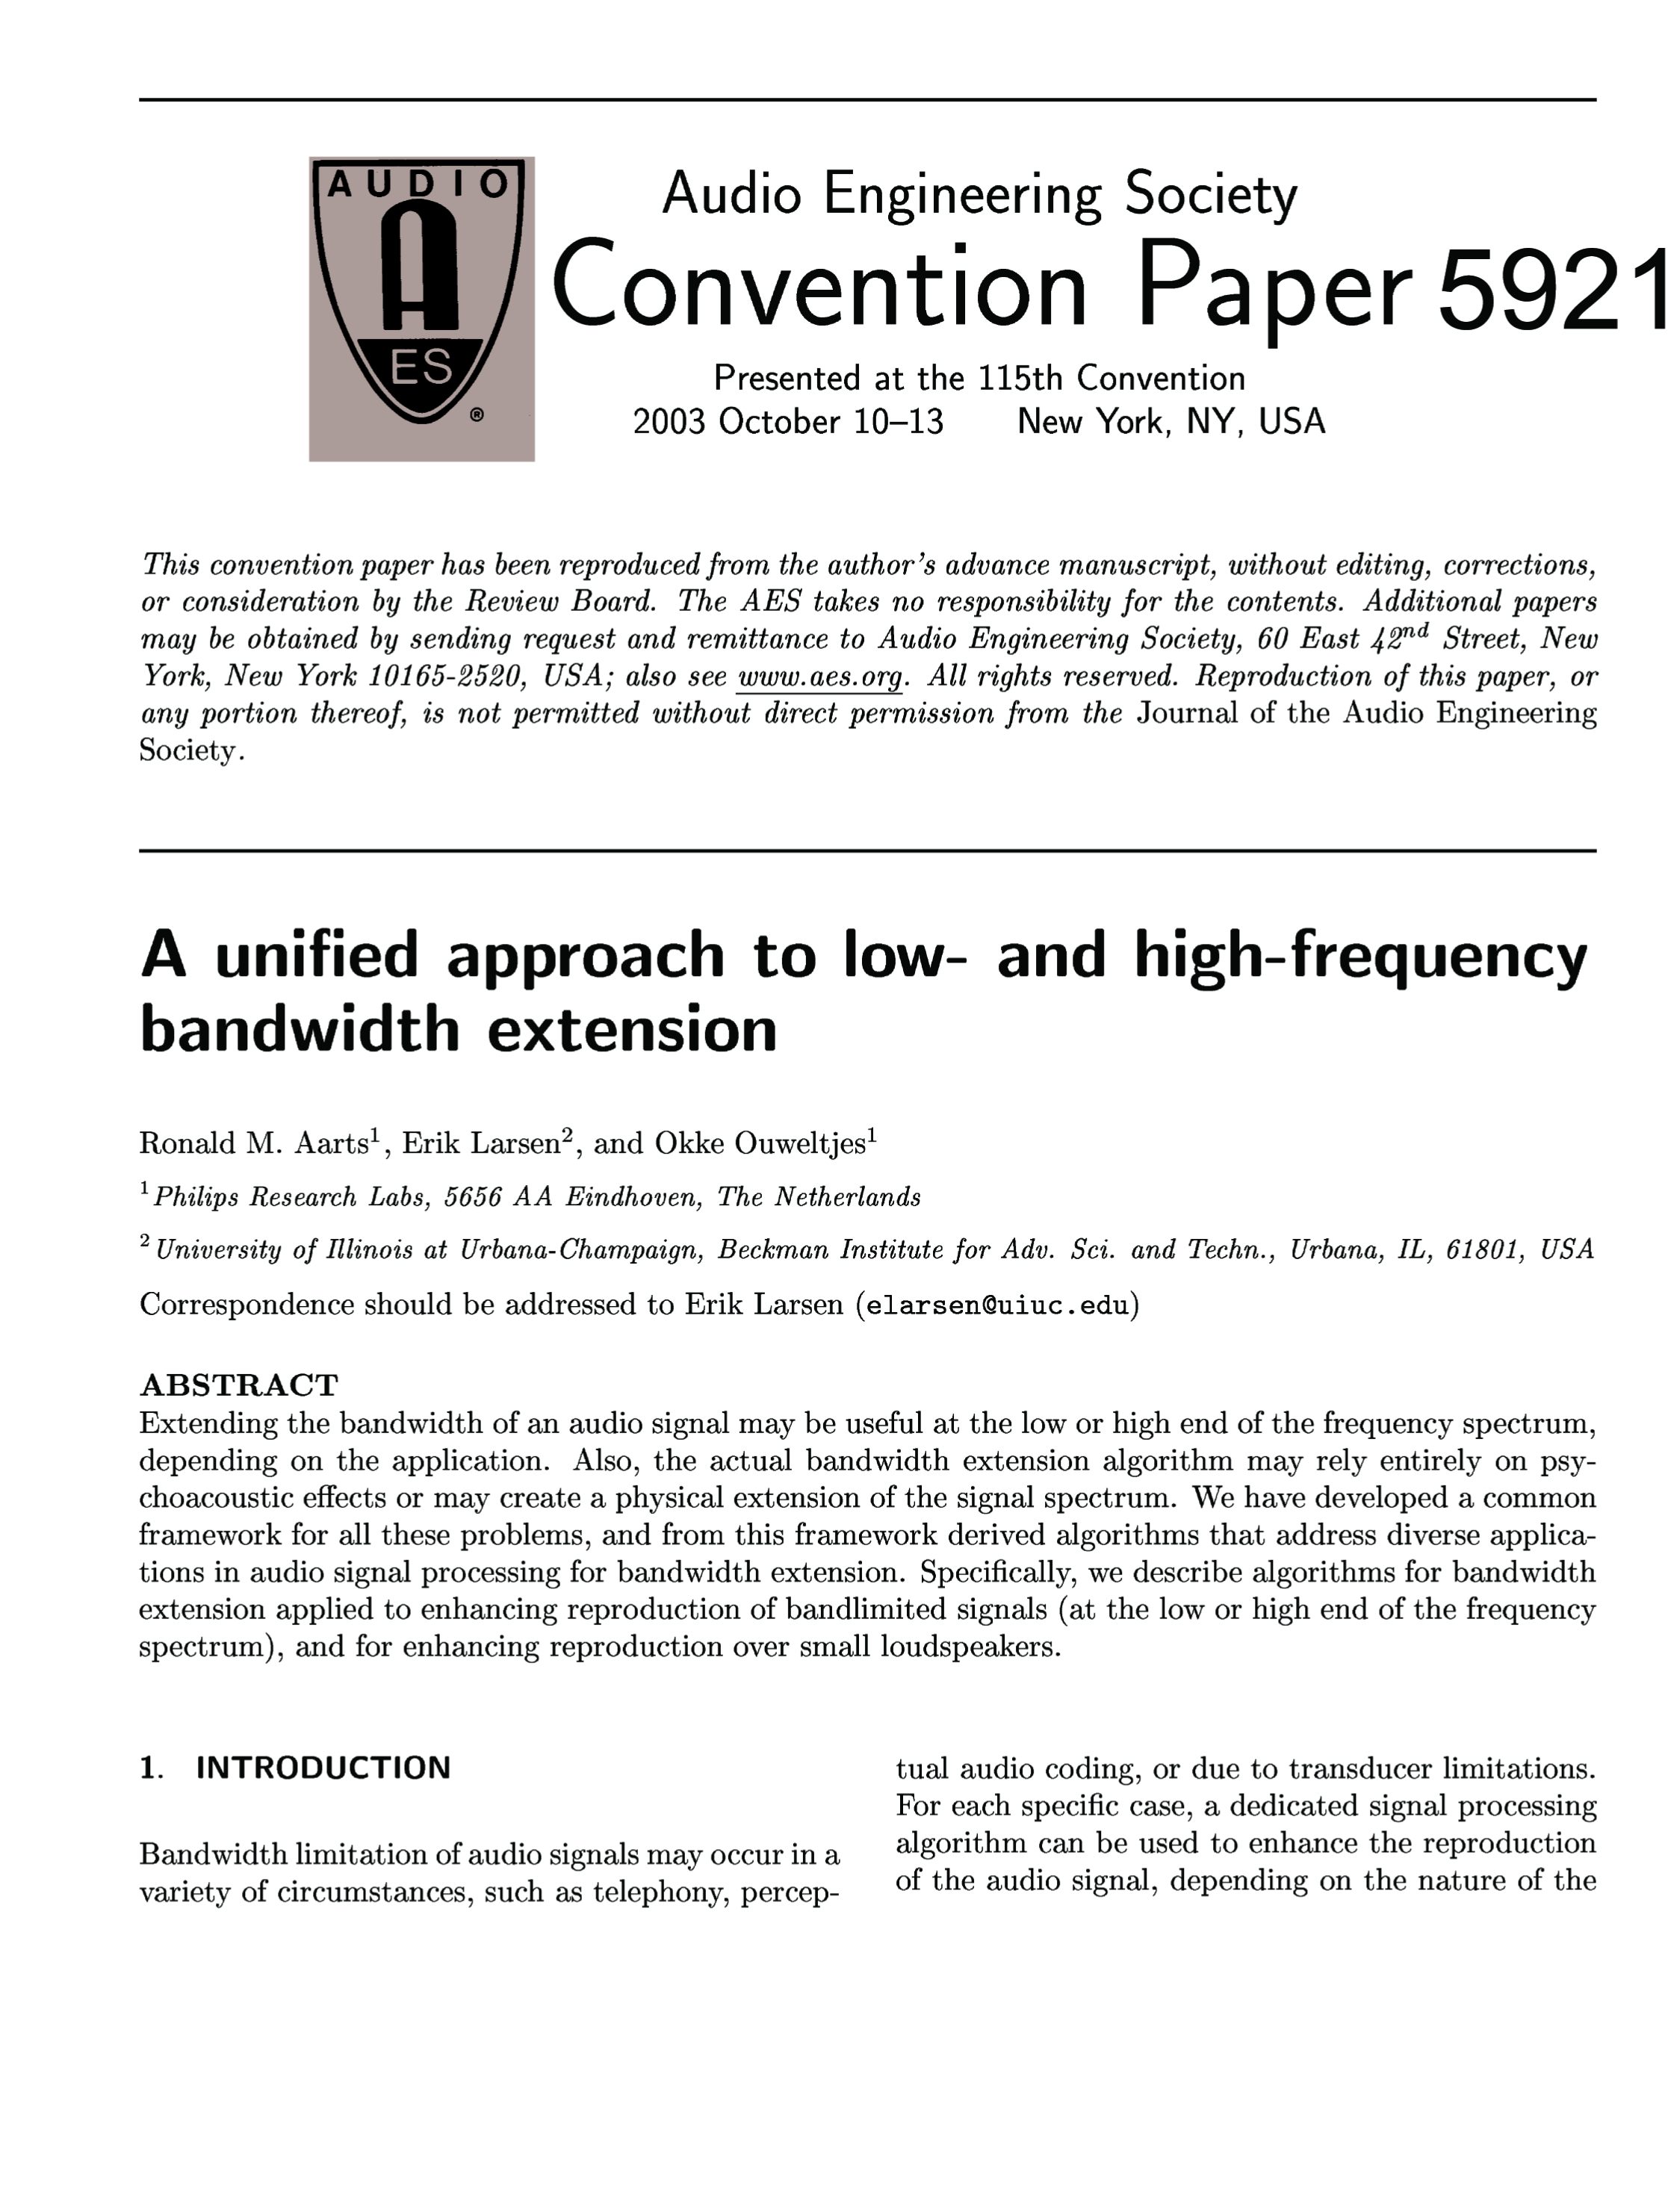 research paper on advanced encryption standard The design of rijndael - aes - the advanced encryption rijndael was the surprise winner of the contest for the new advanced en cryption standard as the advanced encryption standard than research papers 2 what is the advanced encryption standard aes - course hero 2 what is the advanced encryption standard aes originally des was only from.